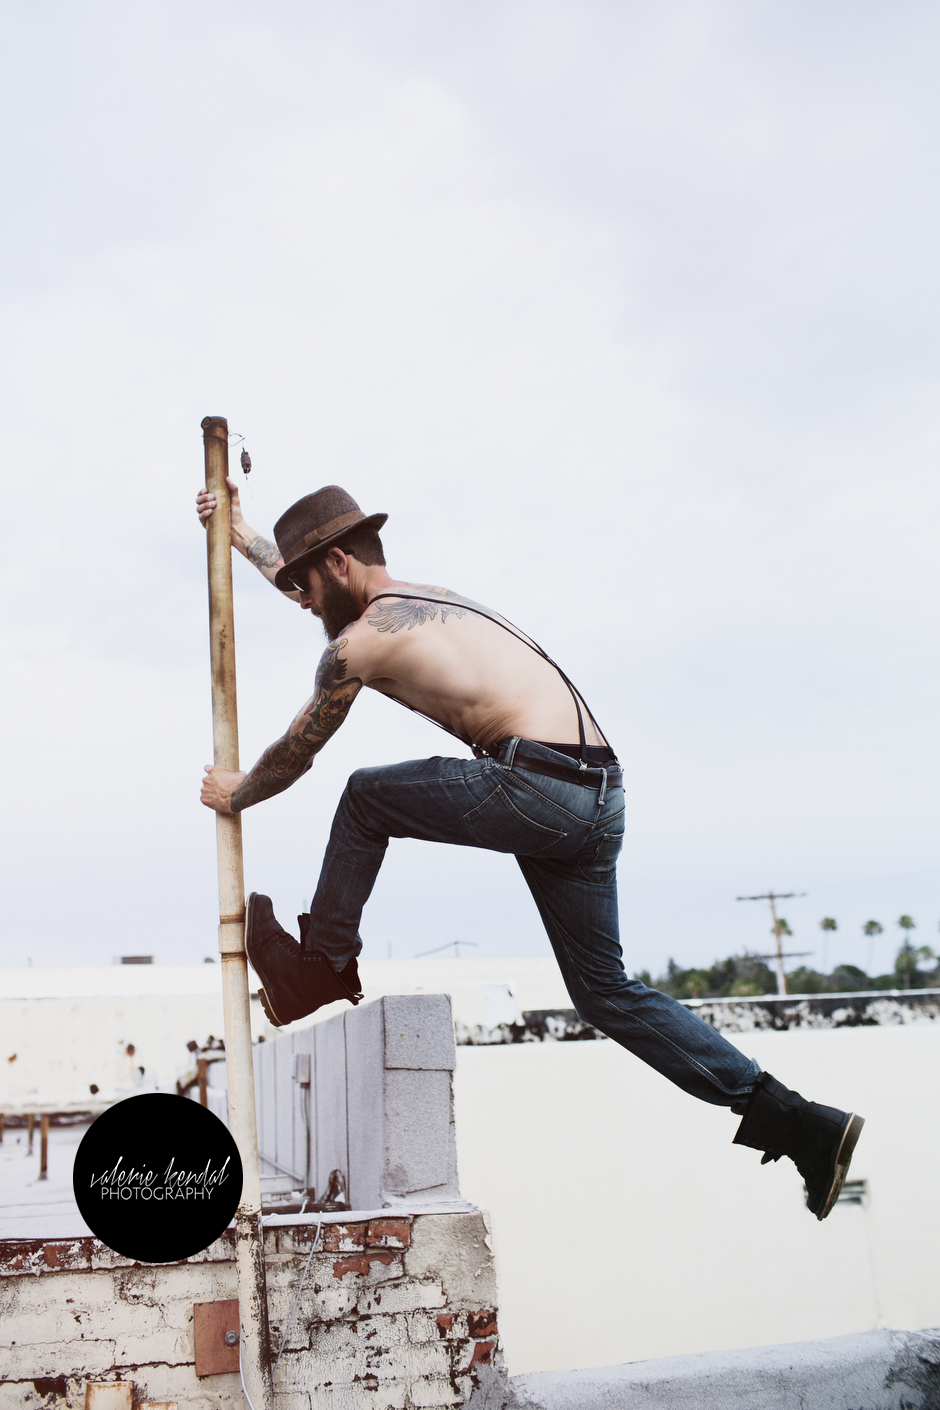 Los-Angeles-Tattoo-Suspenders-Commercial-Lifestyle-Rooftop-Valerie-Kendal-Photography -Mark B 872.JPG